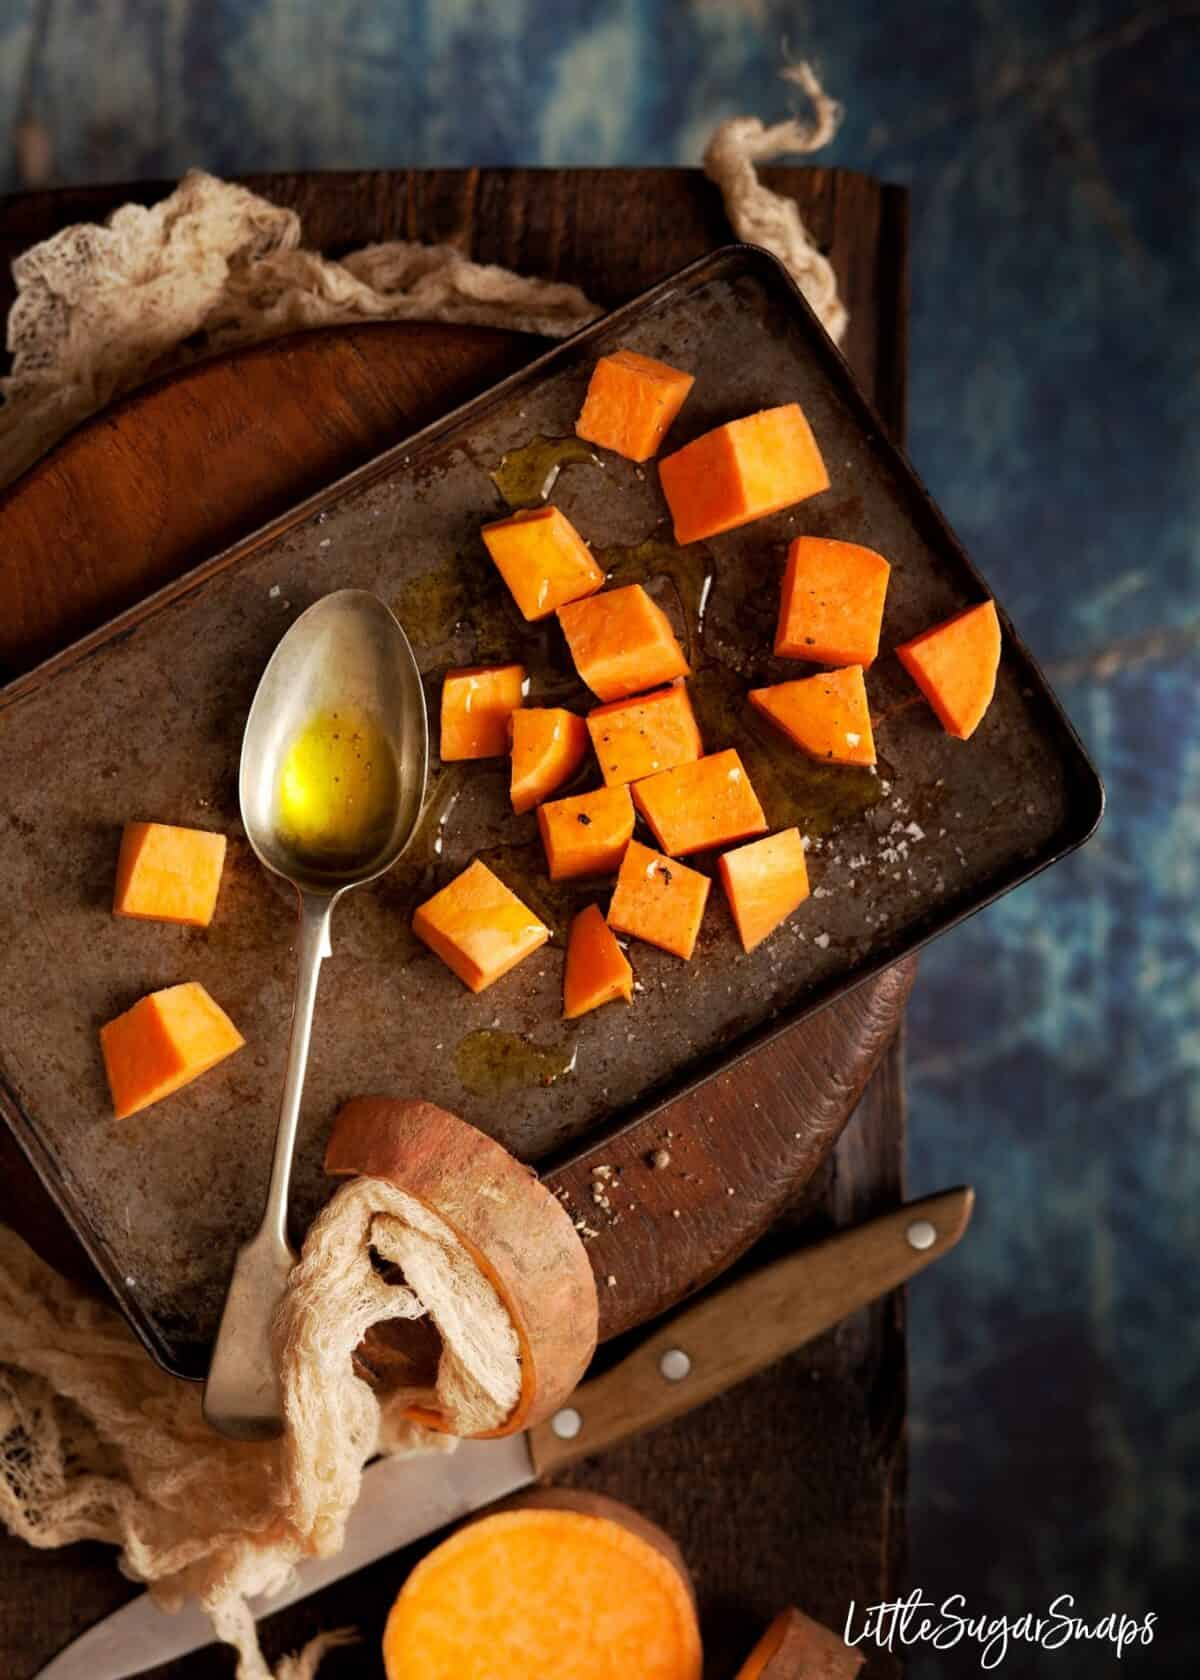 cubes of sweet potato on a baking sheet with olive oil